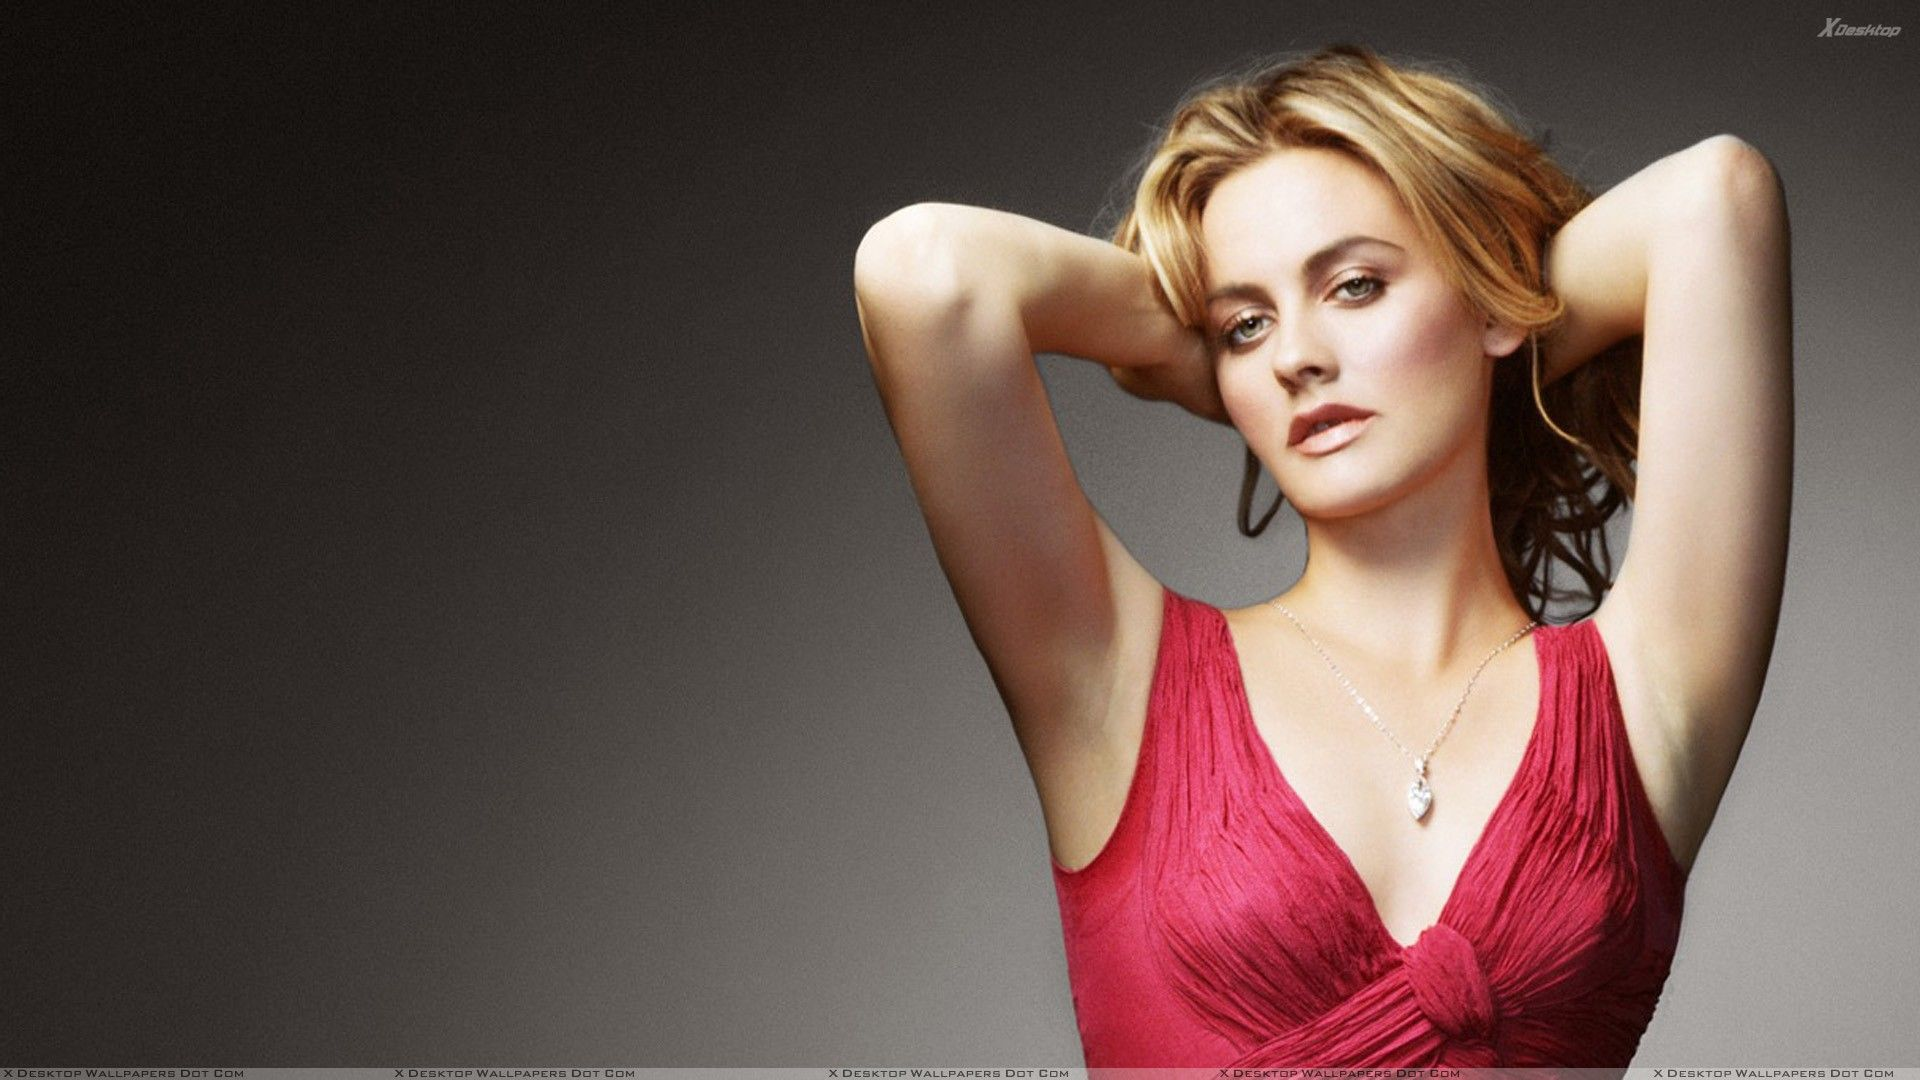 Alicia Silverstone Golden Hair and Red Dress HD Wallpapers